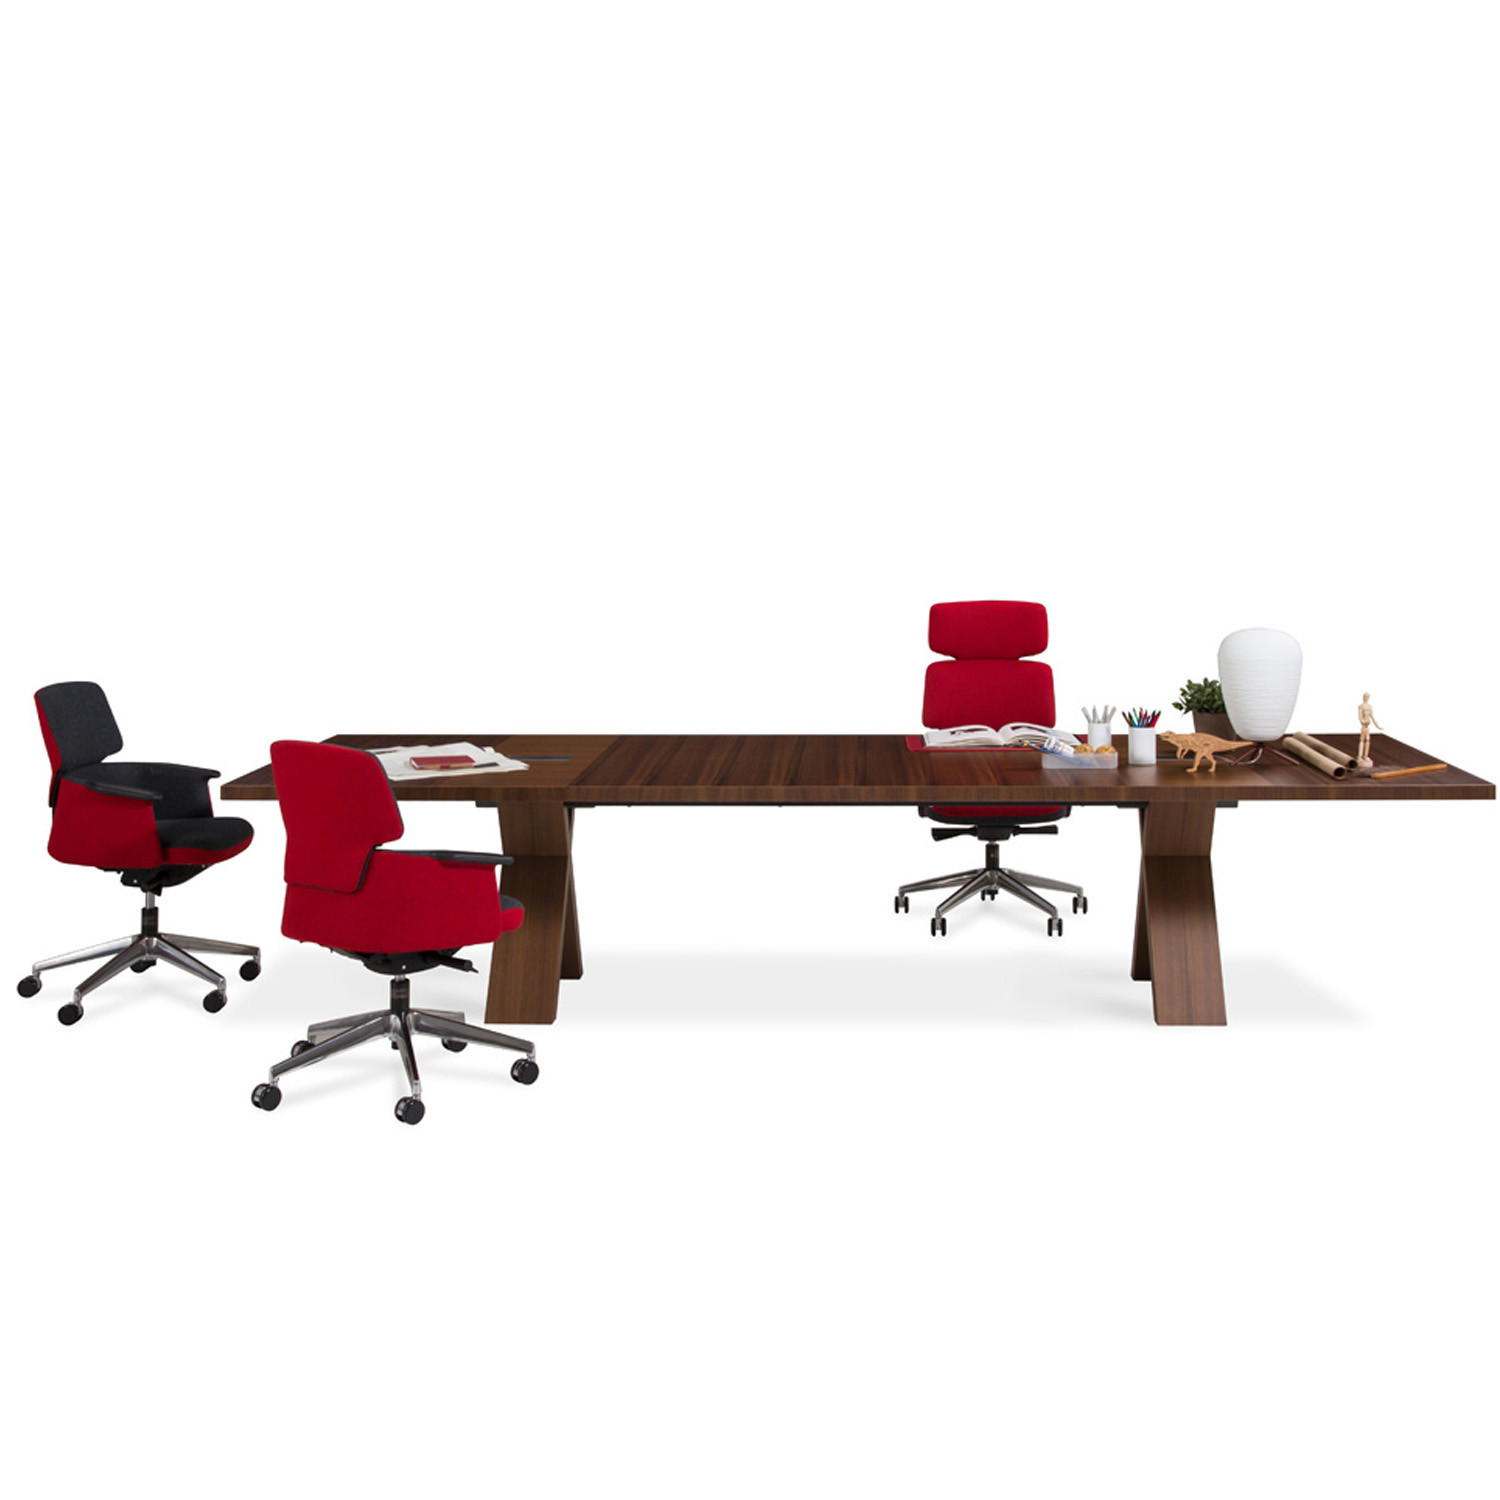 Partita Office Meeting Table by Faruk Malhan